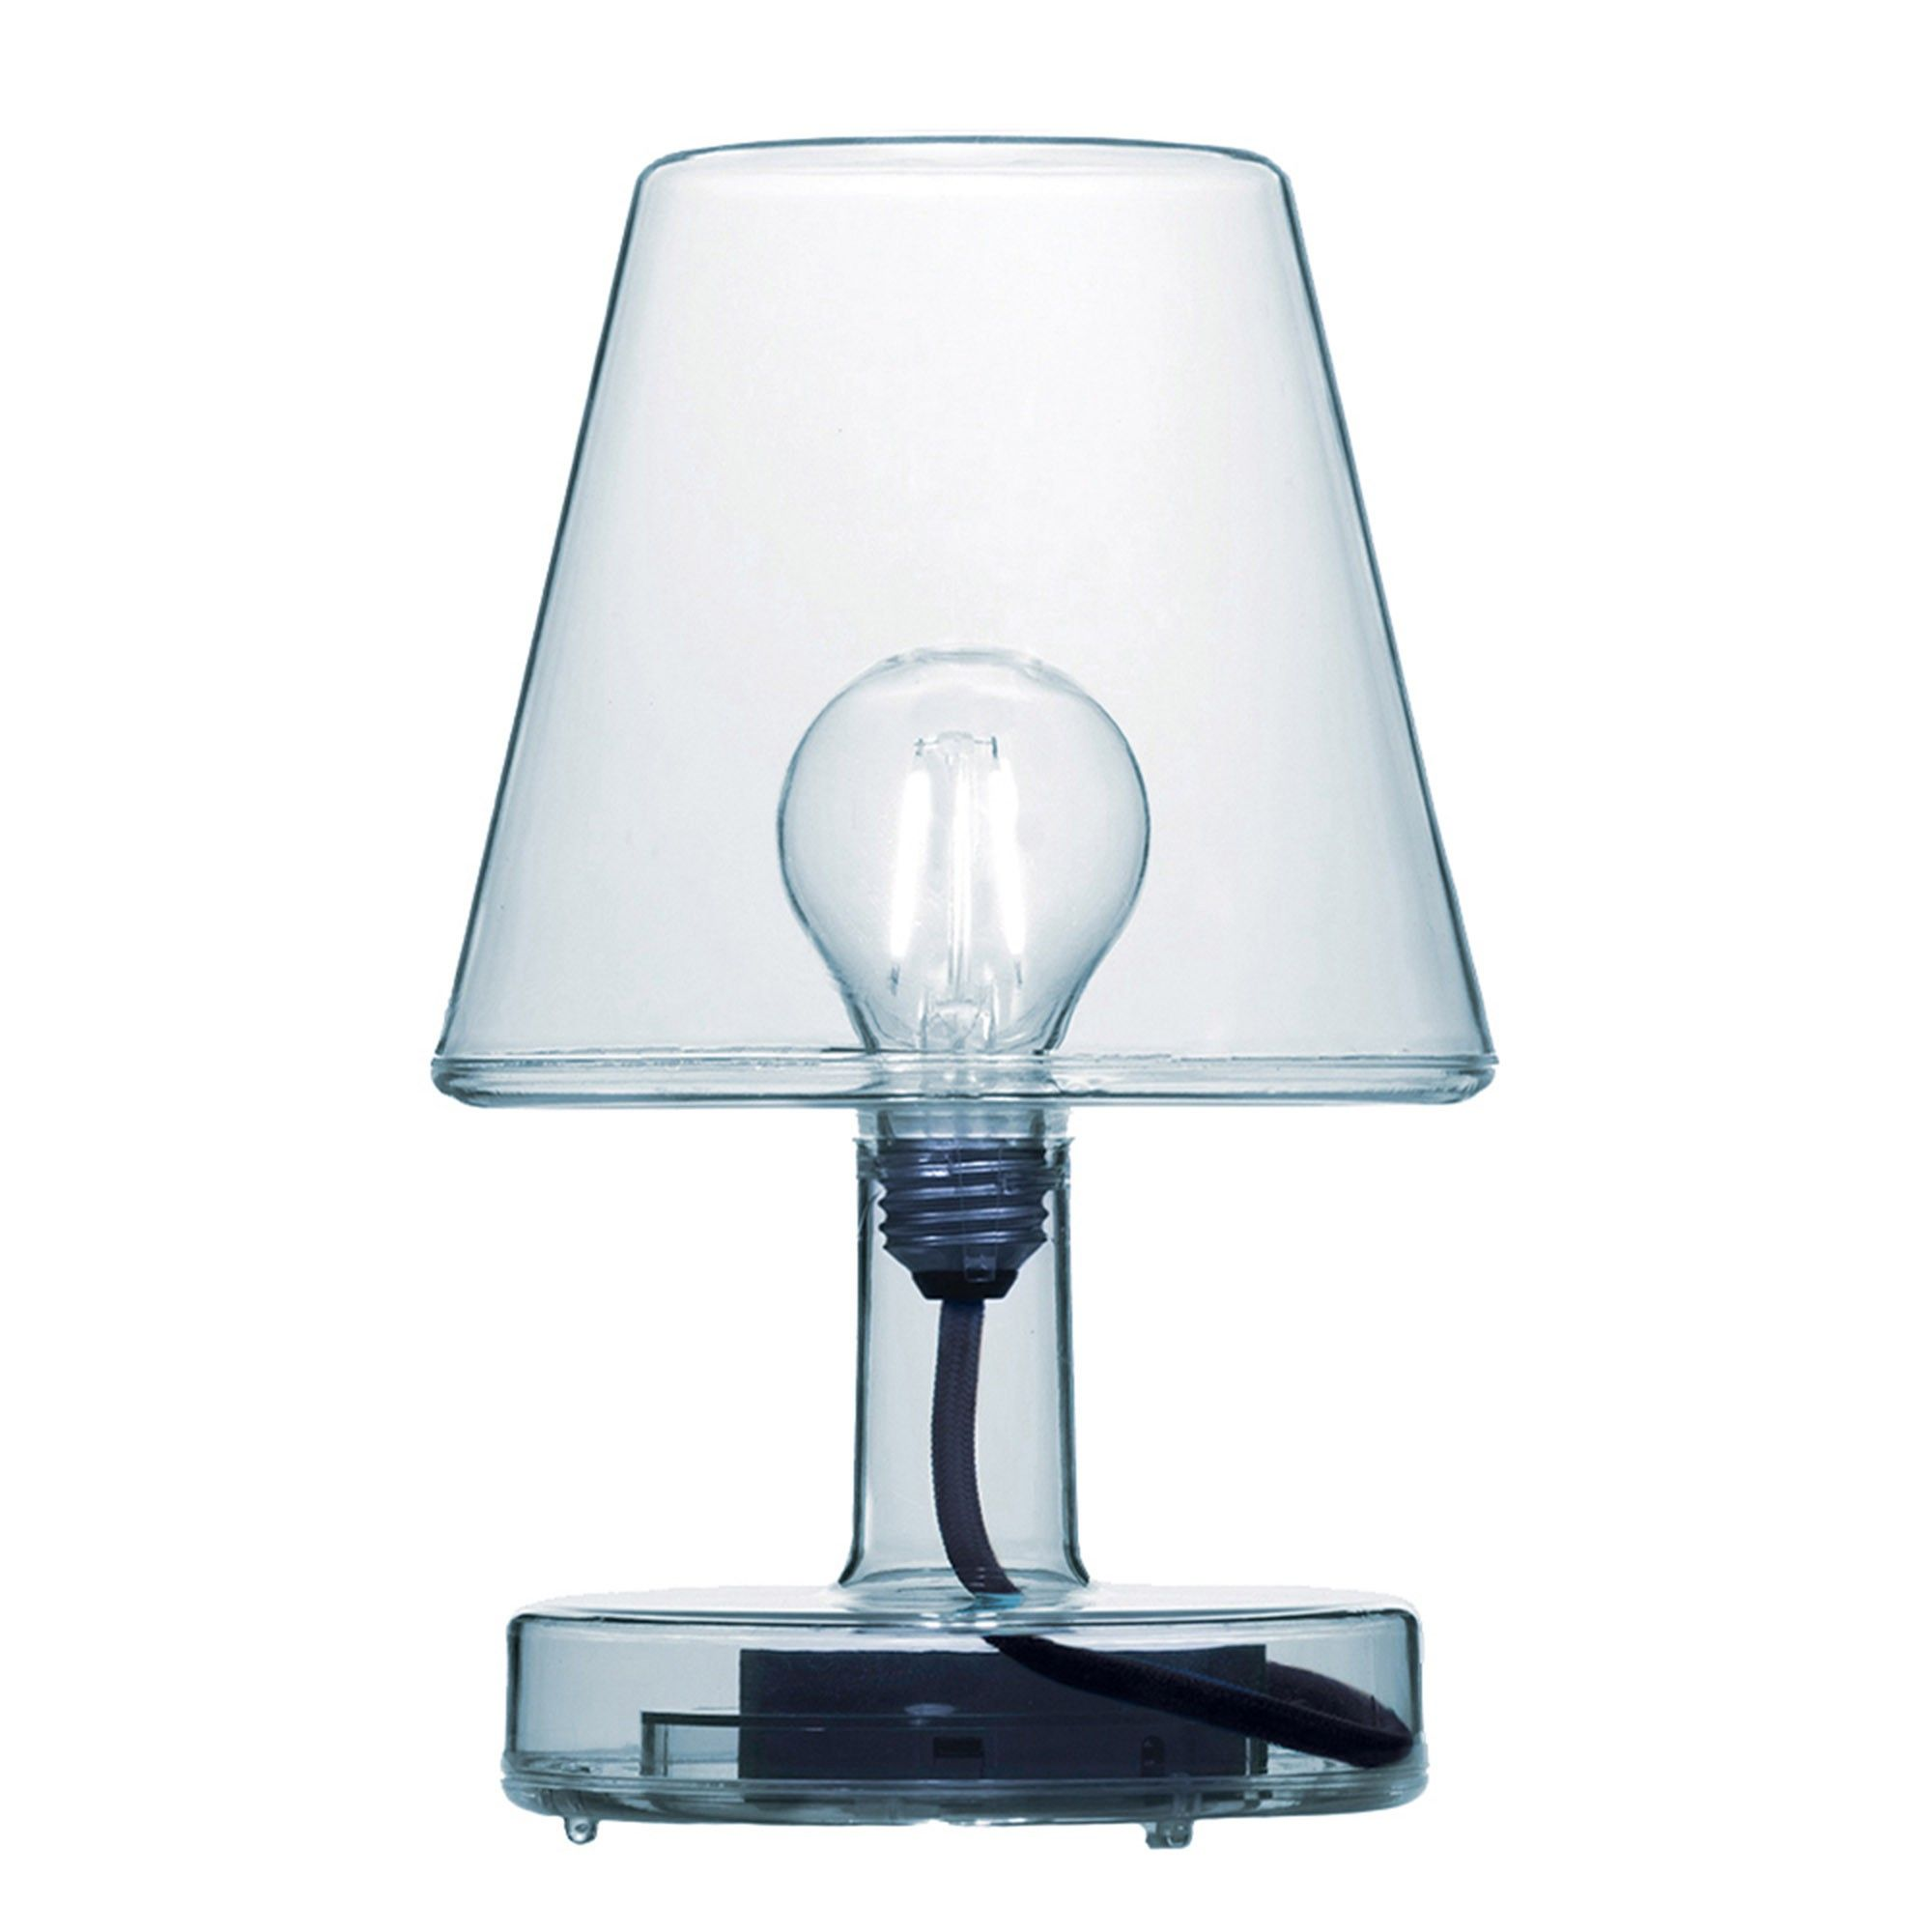 Lampe De Table Transloetje Sans Fil Bleu Fatboy Table Lamp Lamp Table Lamp Base